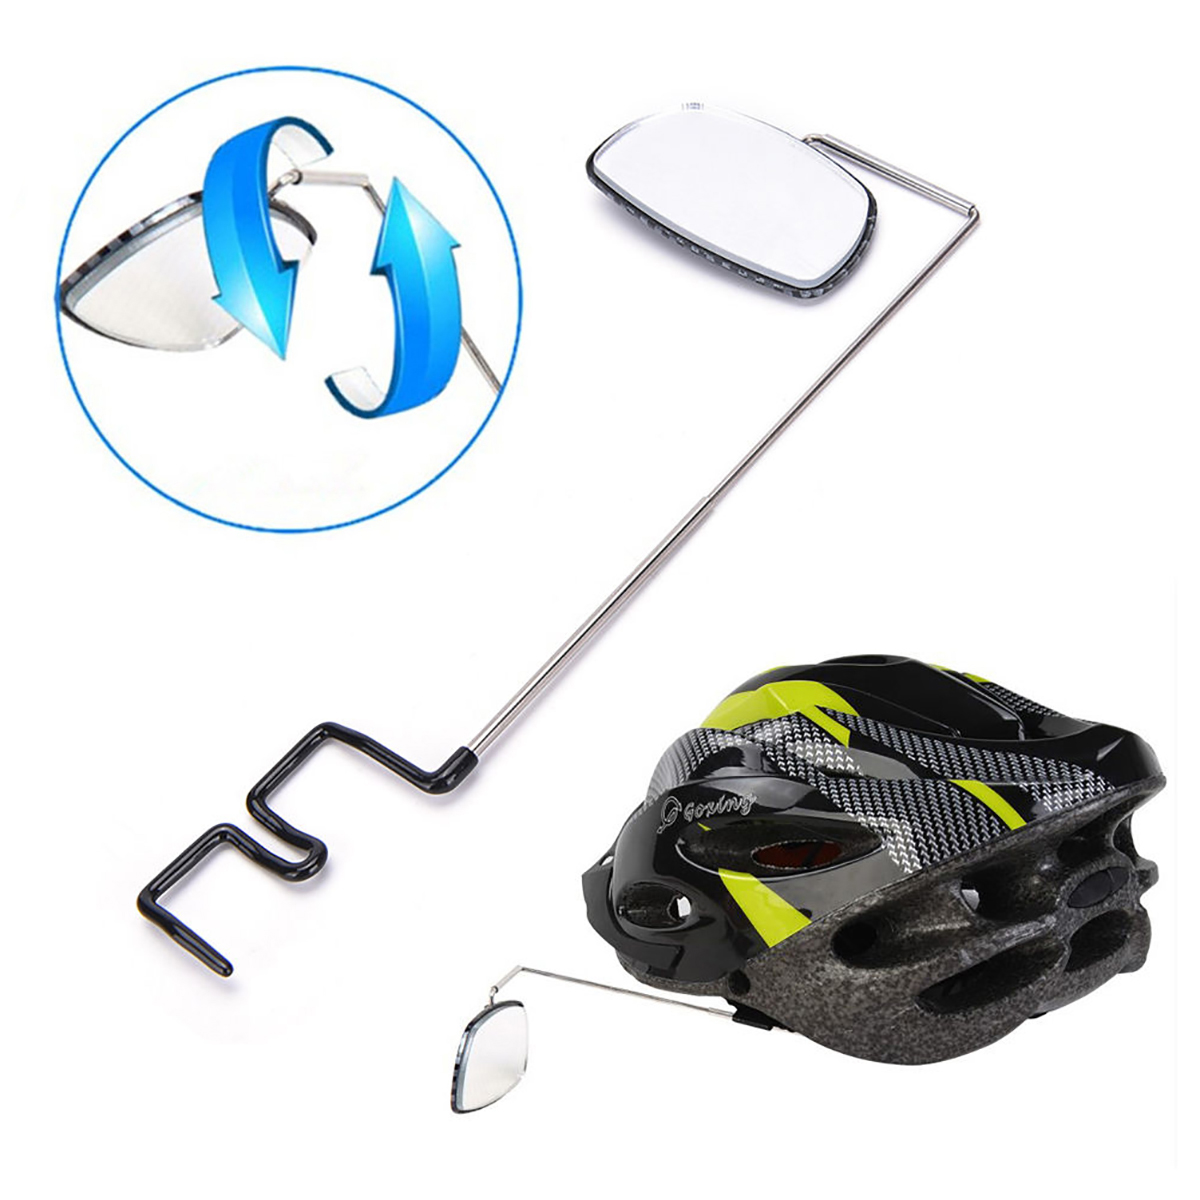 Bicycle Rearview Cycling Riding Helmet Eyeglass <font><b>Mirror</b></font> Rearview Adjustable Black Bicycle Rearview <font><b>Bike</b></font> Accessories image